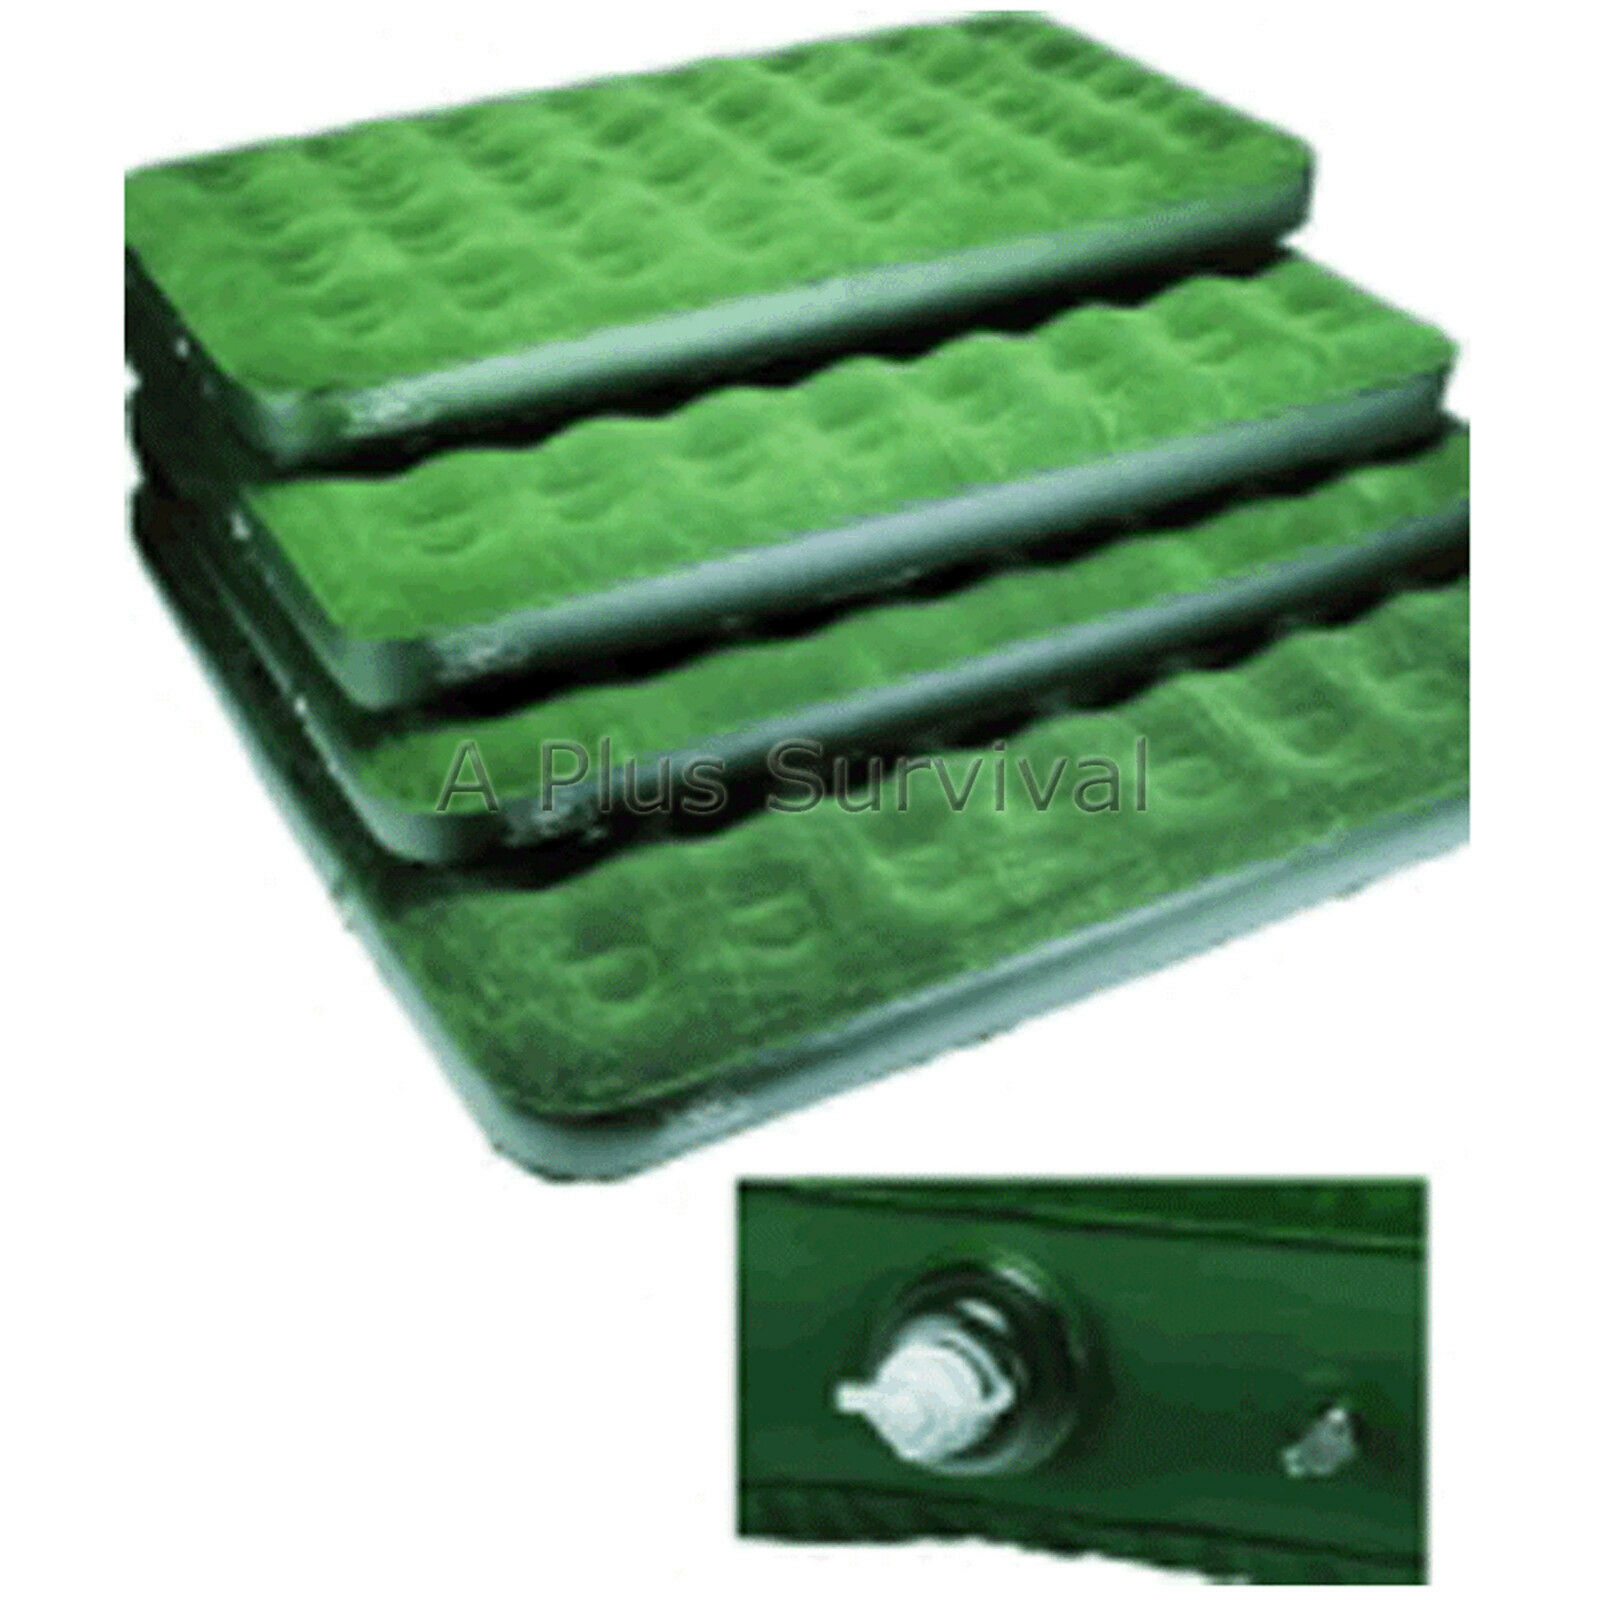 Deluxe Queen Size  Air Bed Mattress, Perfect for Camping  lowest whole network